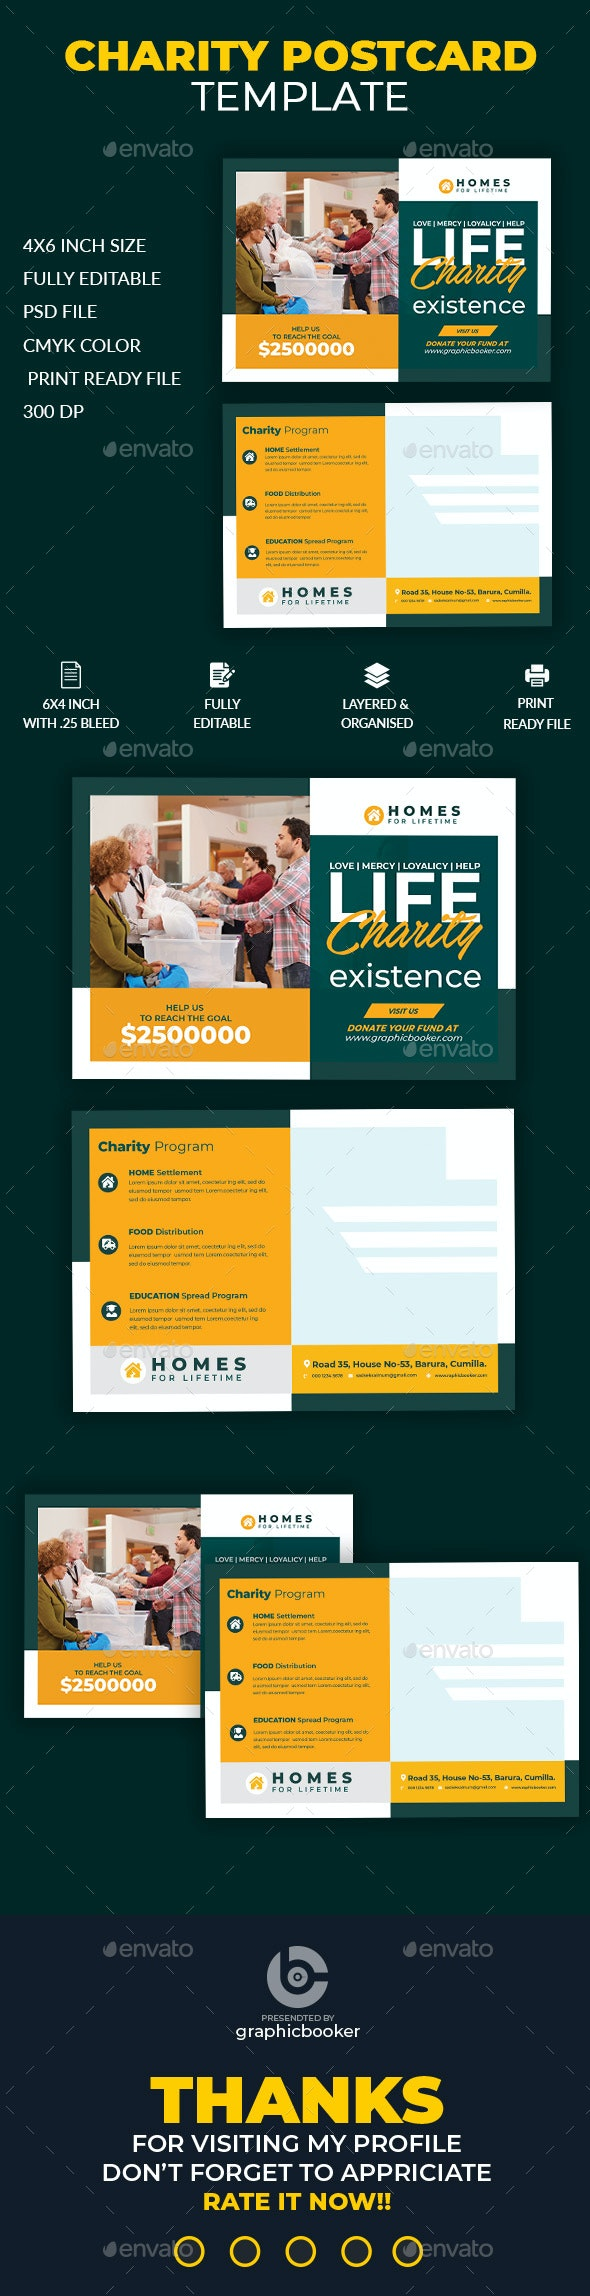 Charity Postcard Template - Cards & Invites Print Templates